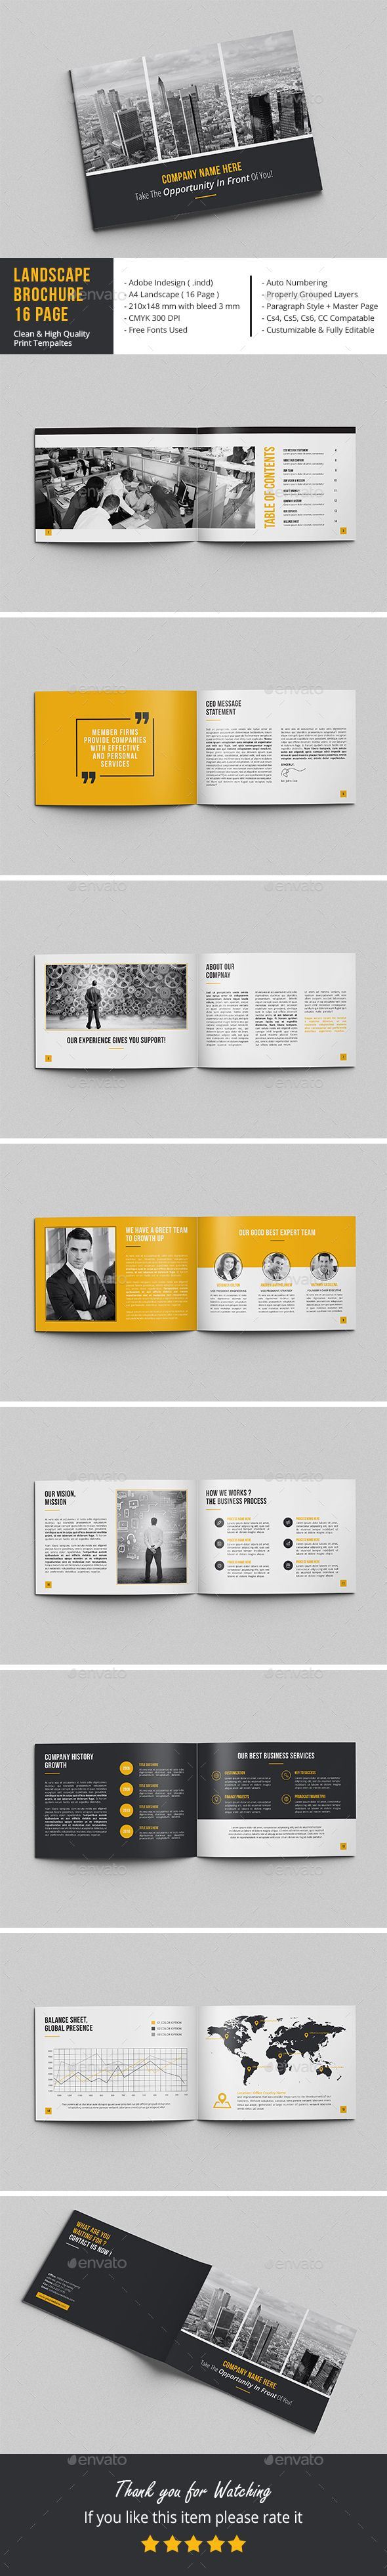 Landscape Brochure Page Brochures Layouts And Corporate Brochure - Brochure design templates indesign